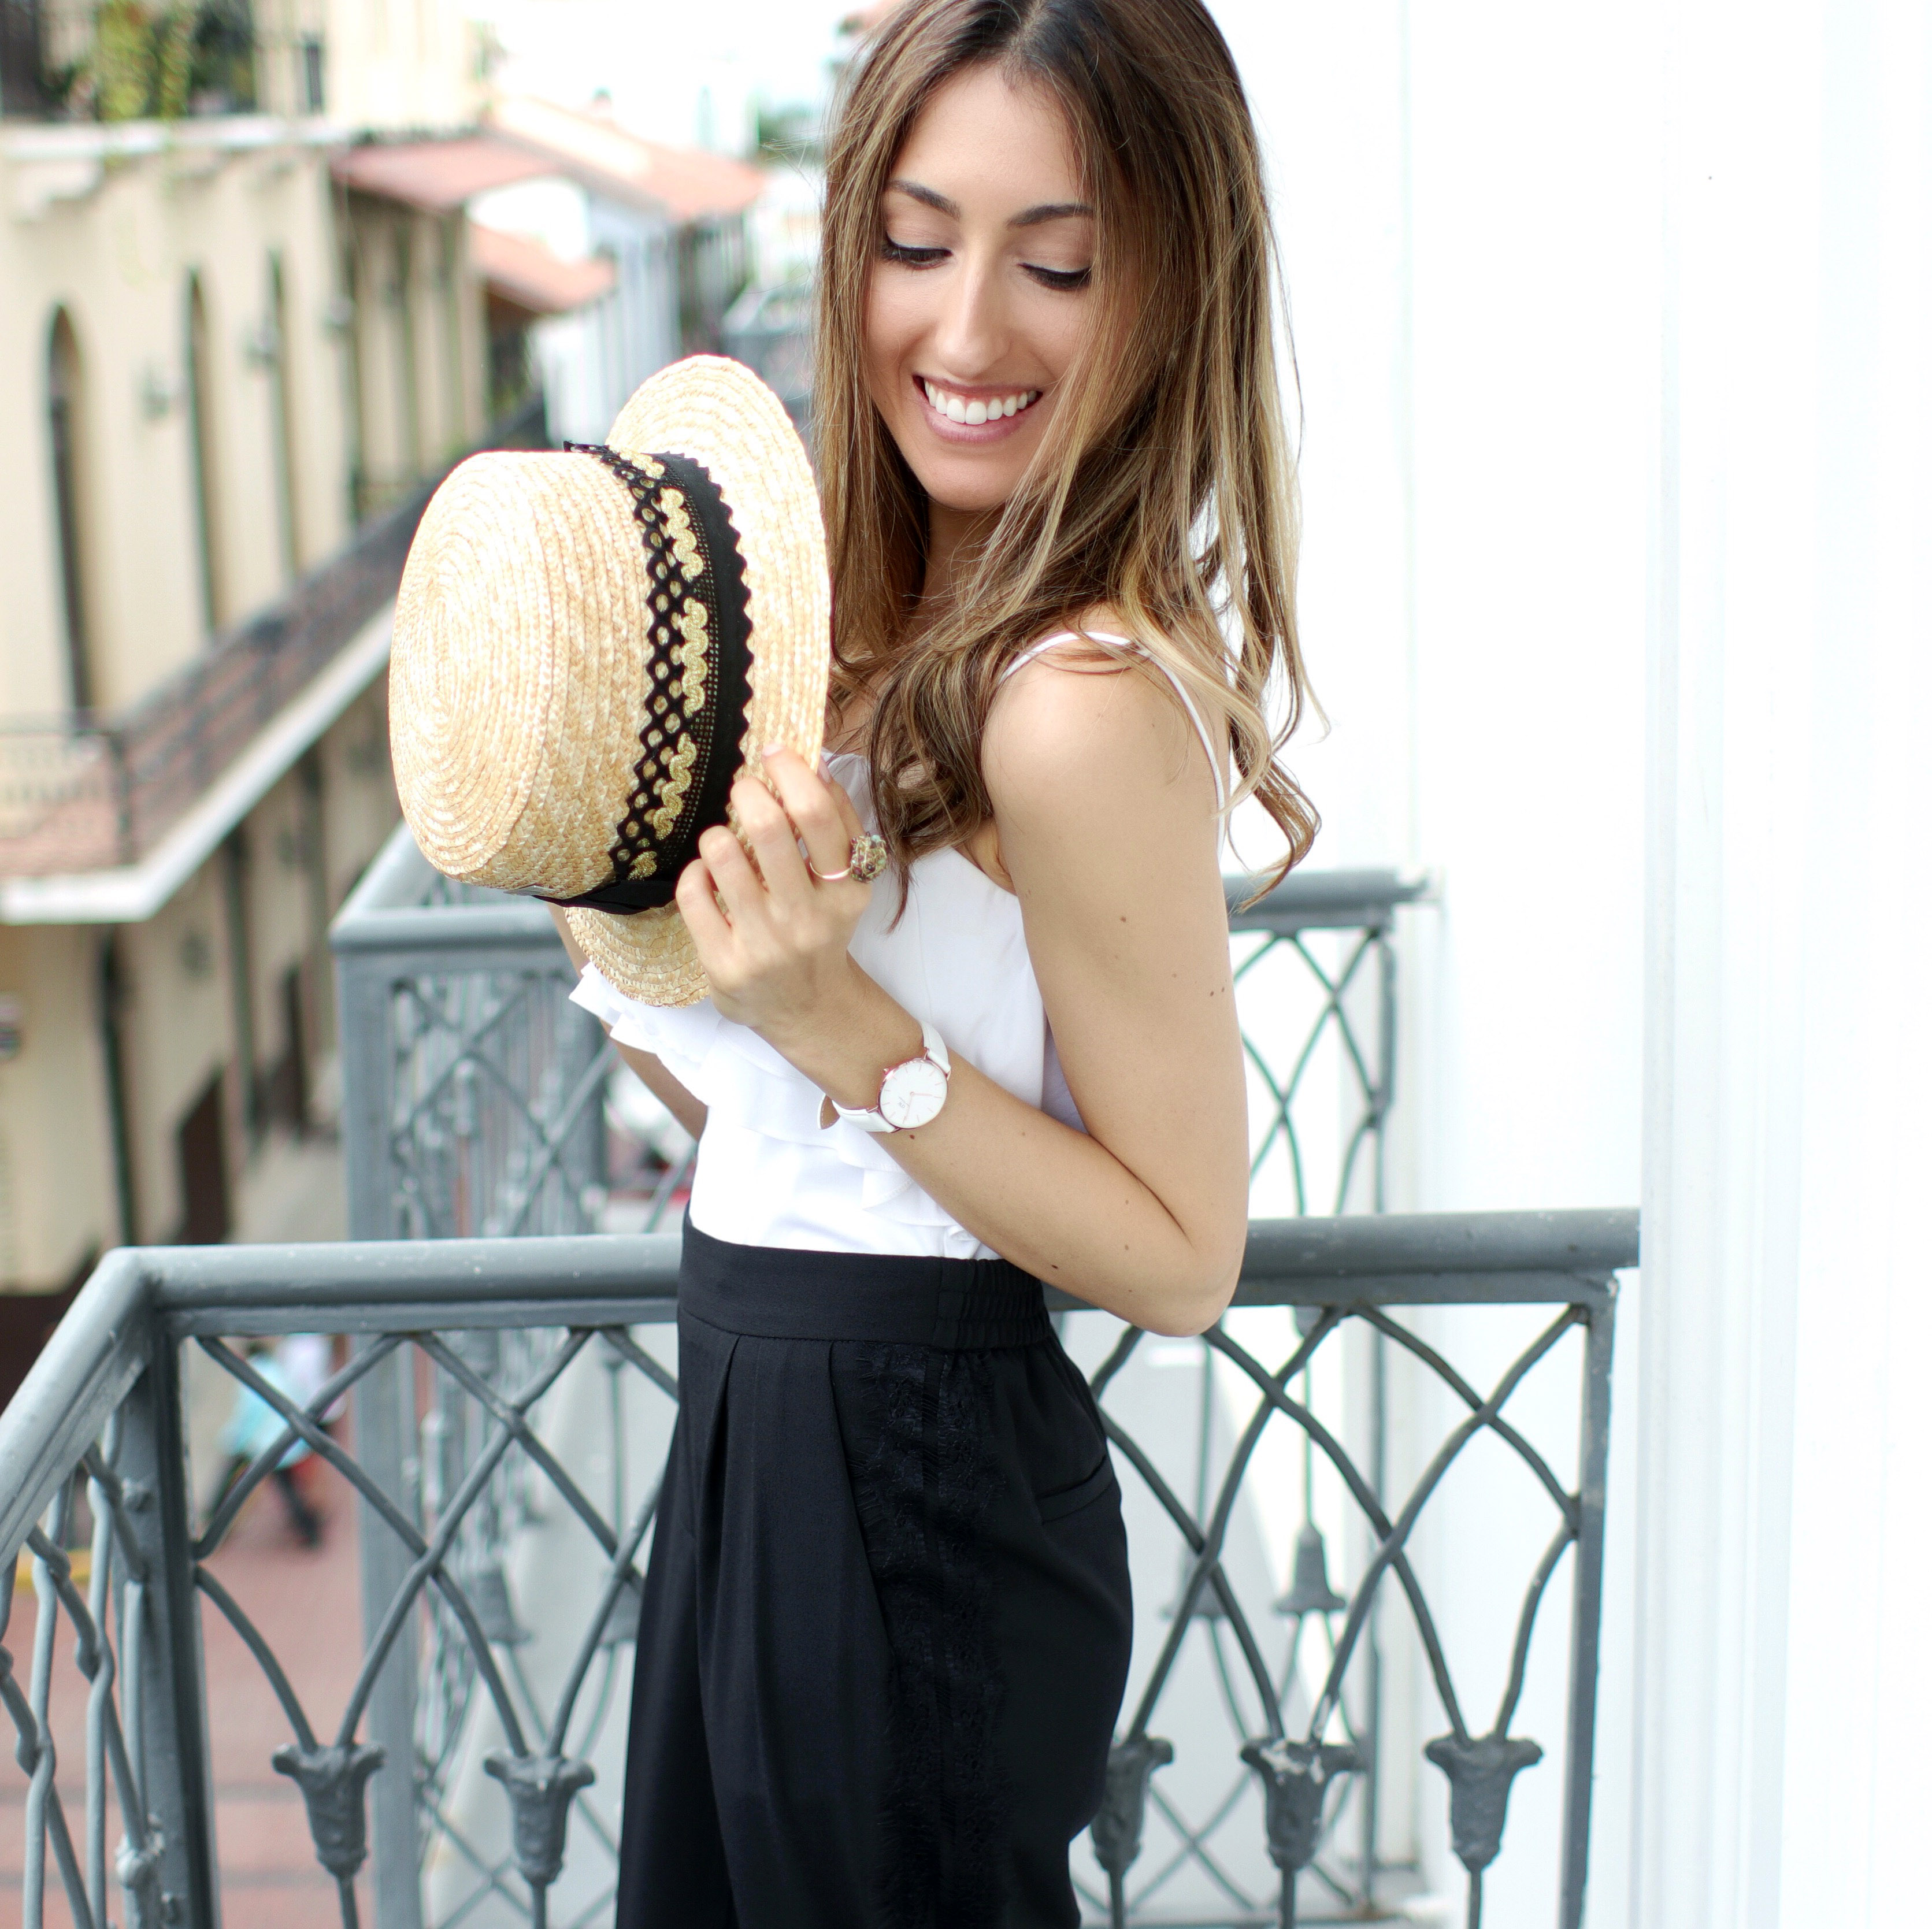 ma-petite-sphere-inspiration-vacation-ootd-summer-love-travel-hotel-hotelboutique-centralhotel-cascoviejo-rooftop-pool-panama